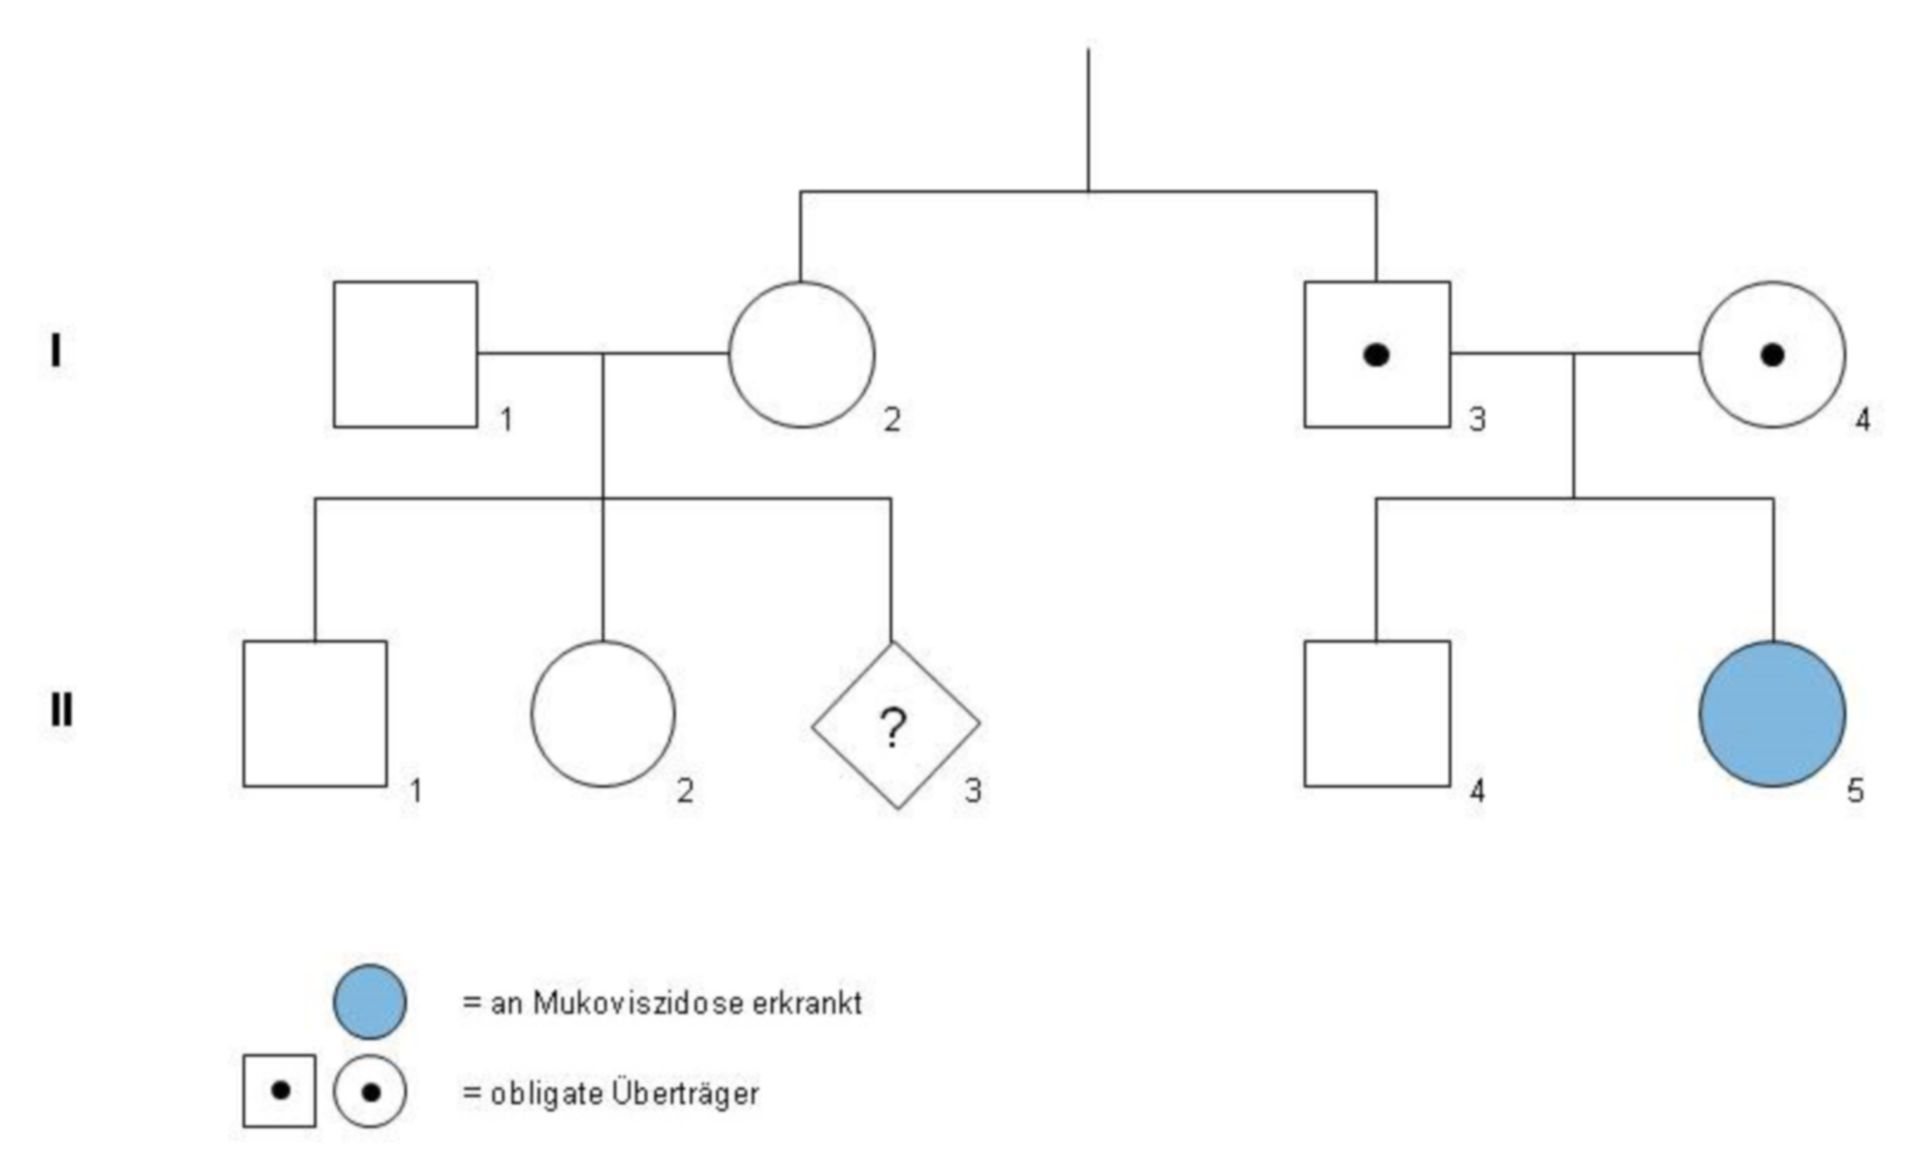 Genealogical tree (example of the Maier family)